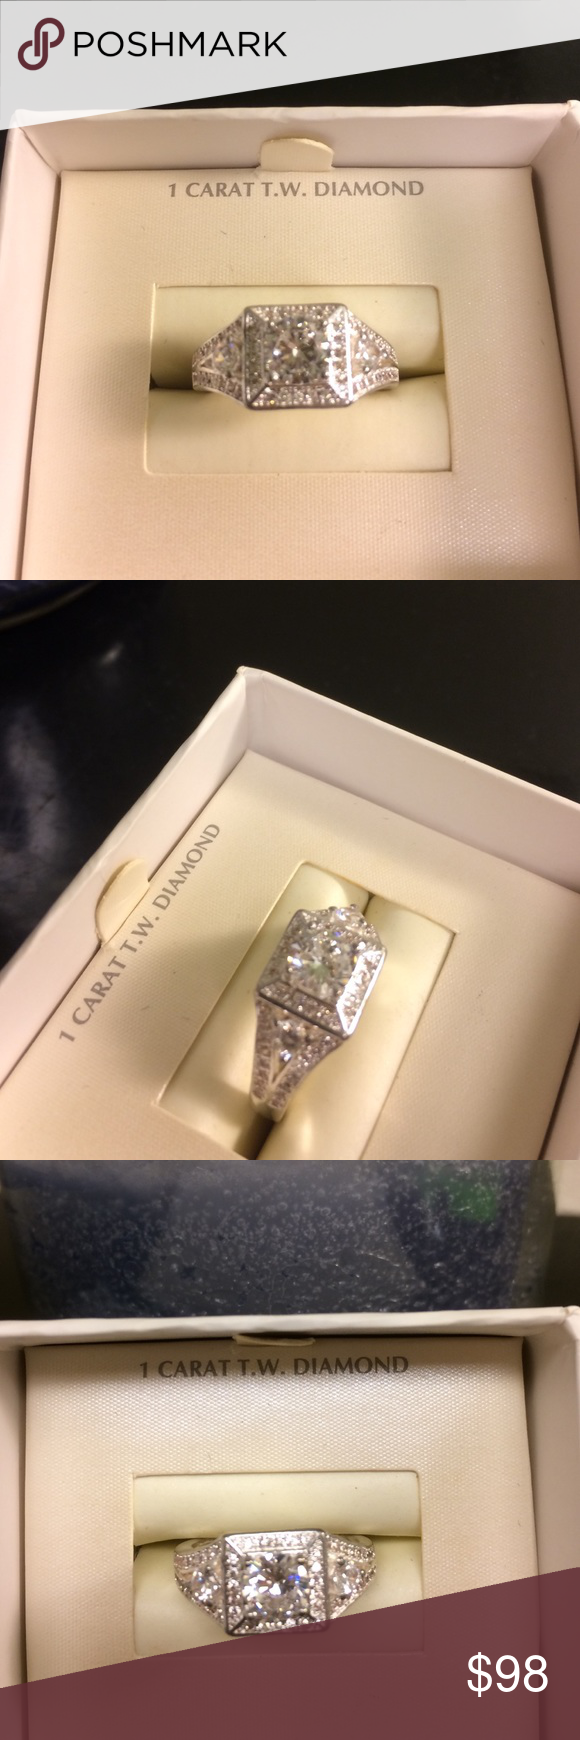 ASHA DIAMOND 💎 WHITE GOLD 18GF RING Beautiful White Gold 18Gf Stamped Ring . Size 7.  1ct total weight ASHA Diamond 💎. Quality H . Clarity clear . Cut Round . Brand New Ring 💍. Never worn . All jewelry is 💯% Brand new . Does not come in prop box . Wrapped and shipped in a gift 🎁 box . Tracking provided. Fire & Ice Jewelry Rings